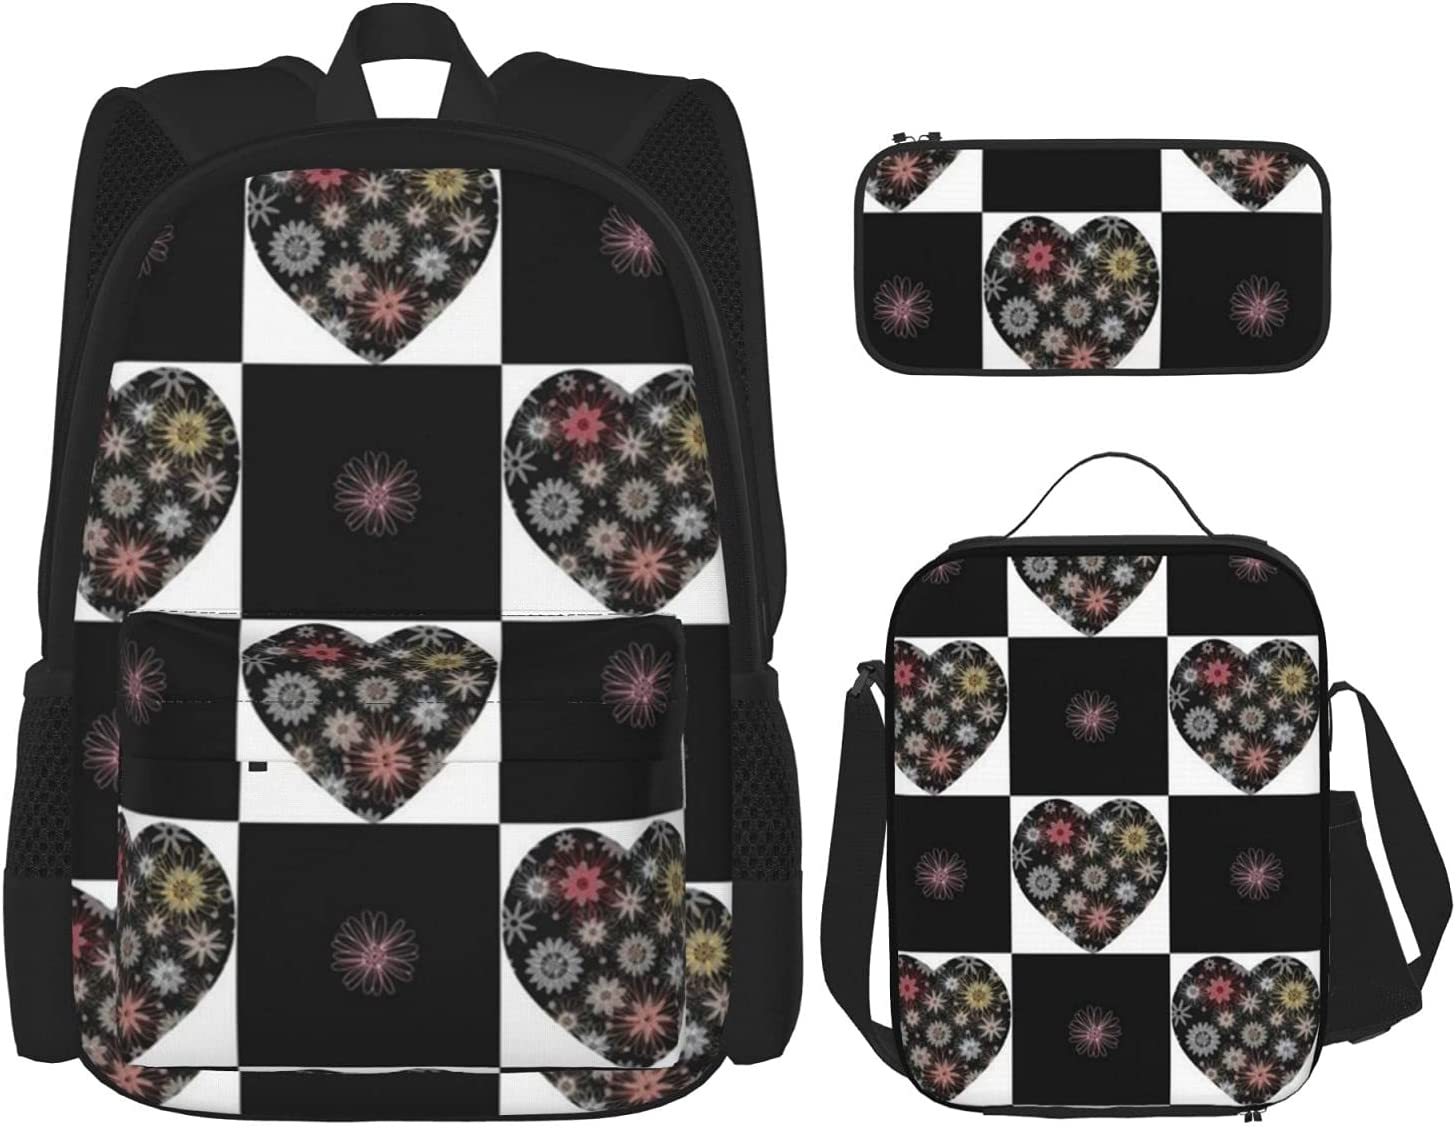 Backpack Girls Boys Black Max 90% OFF Hearts Tulsa Mall Squares Bag Cute 1 3 in Backpac